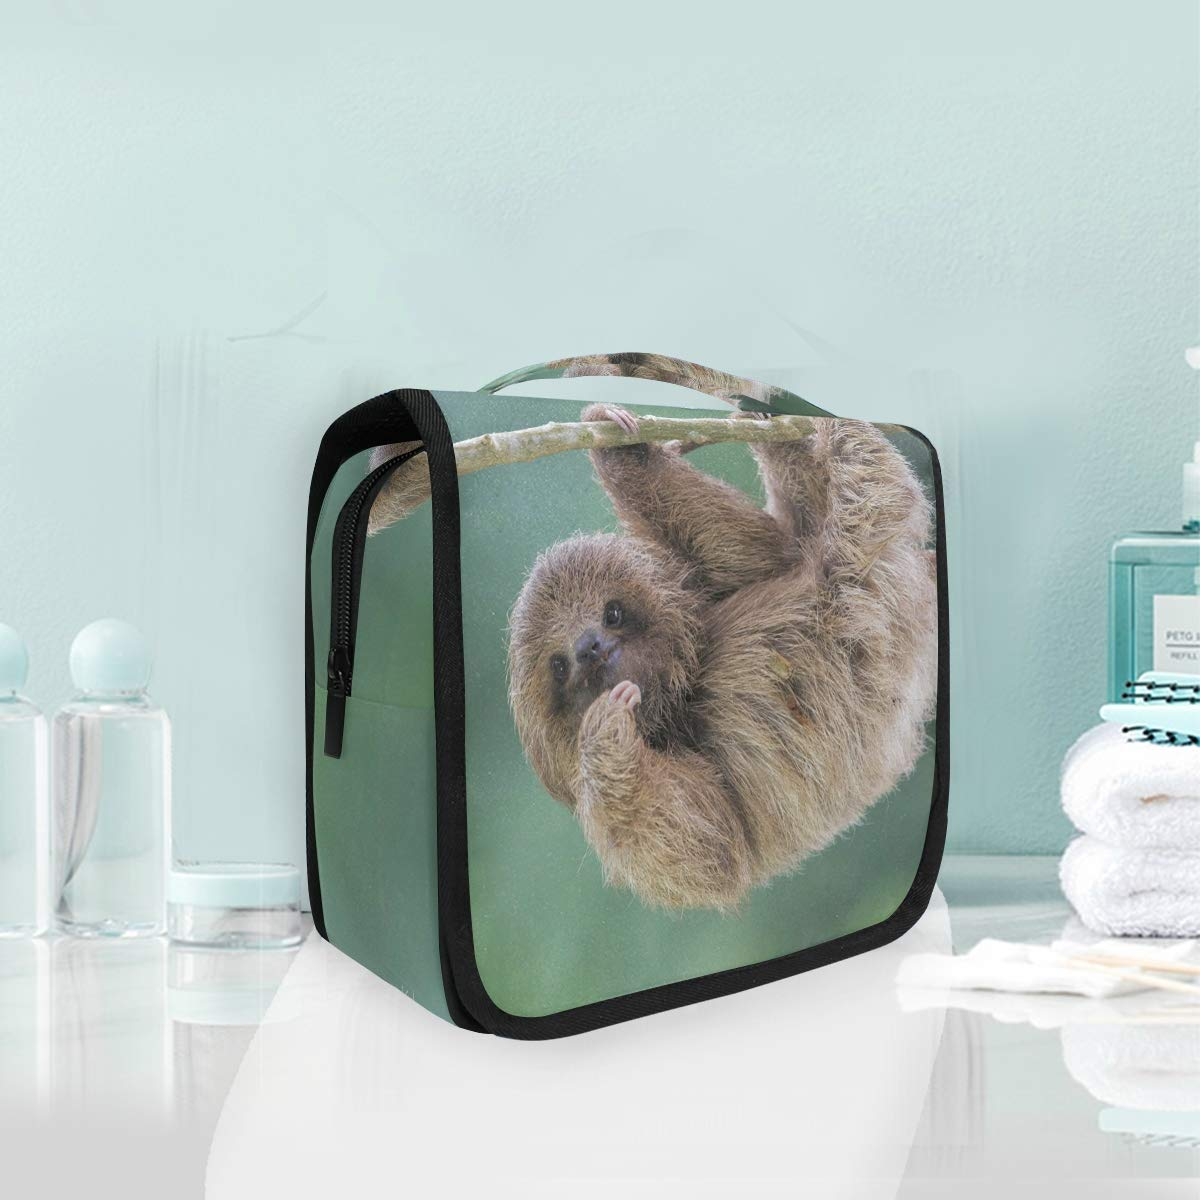 Travel Toiletry Cosmetic Bag Sloth Baby Tree Animal Hanging Shower Makeup Bag Pouch Portable Train Tote Case Organizer Storage For Women Girls